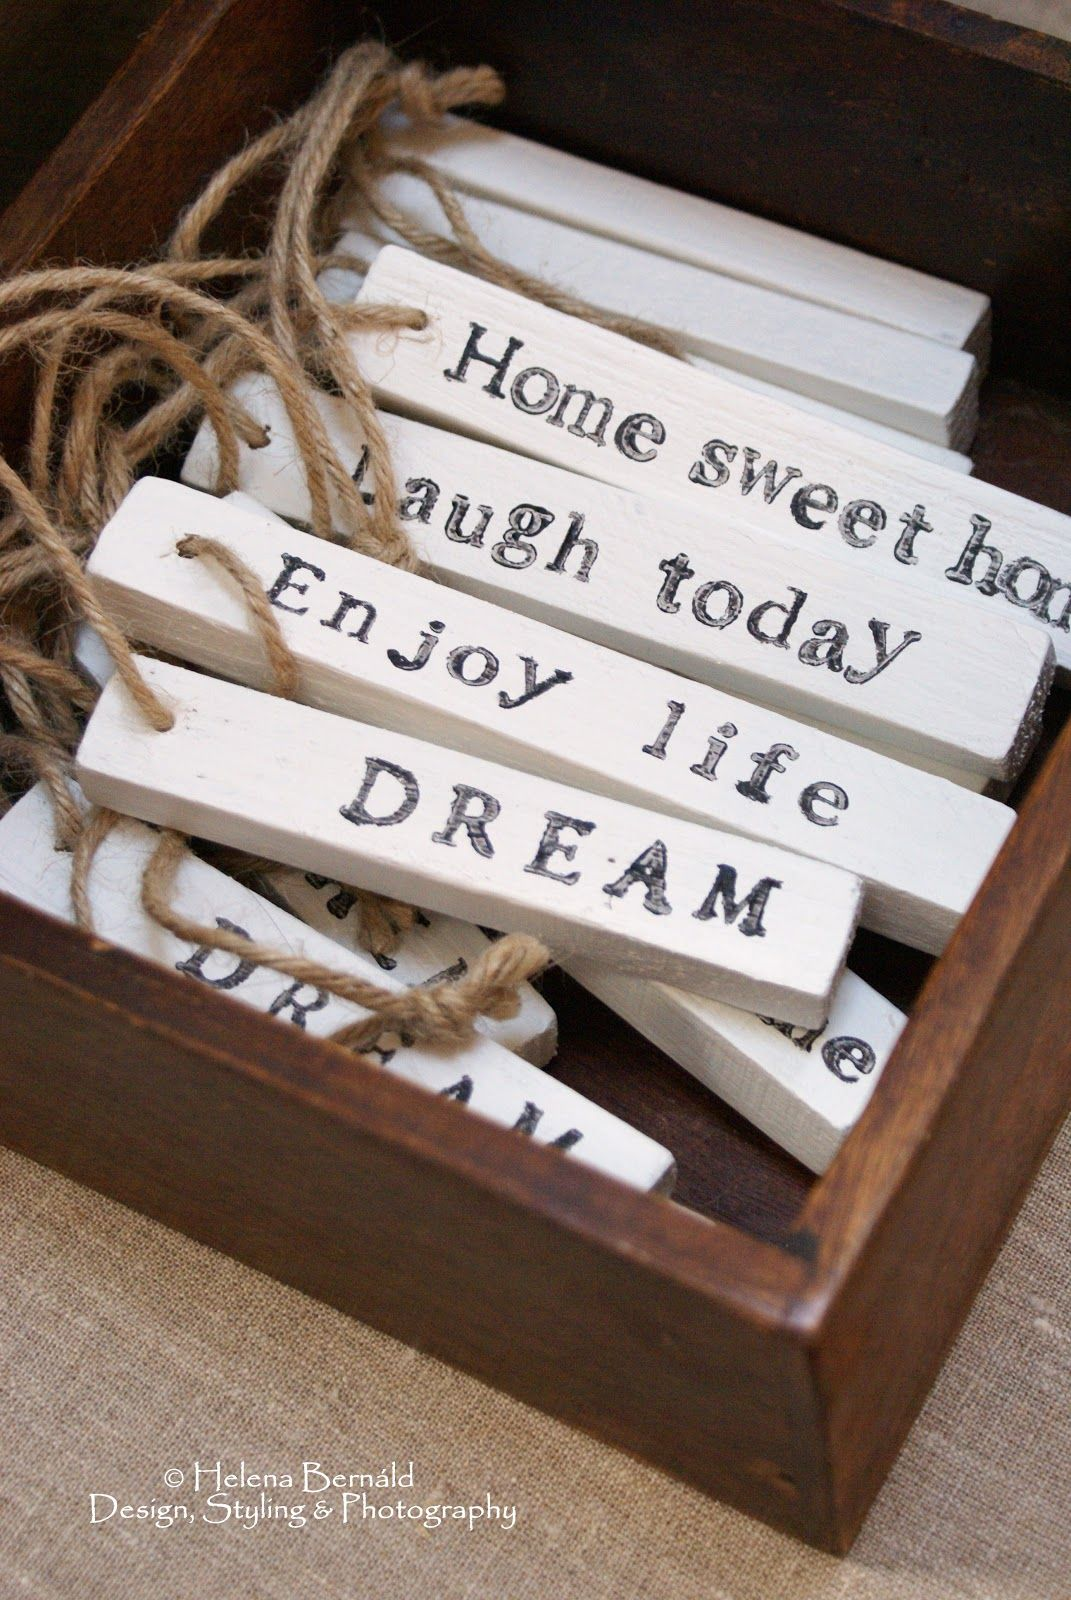 The Swenglish Home Christmas Handmade Word Ornaments Ooo I Like This Idea Wouldnt This Be A Great Gift For The Person Just Starting Out In Their Own